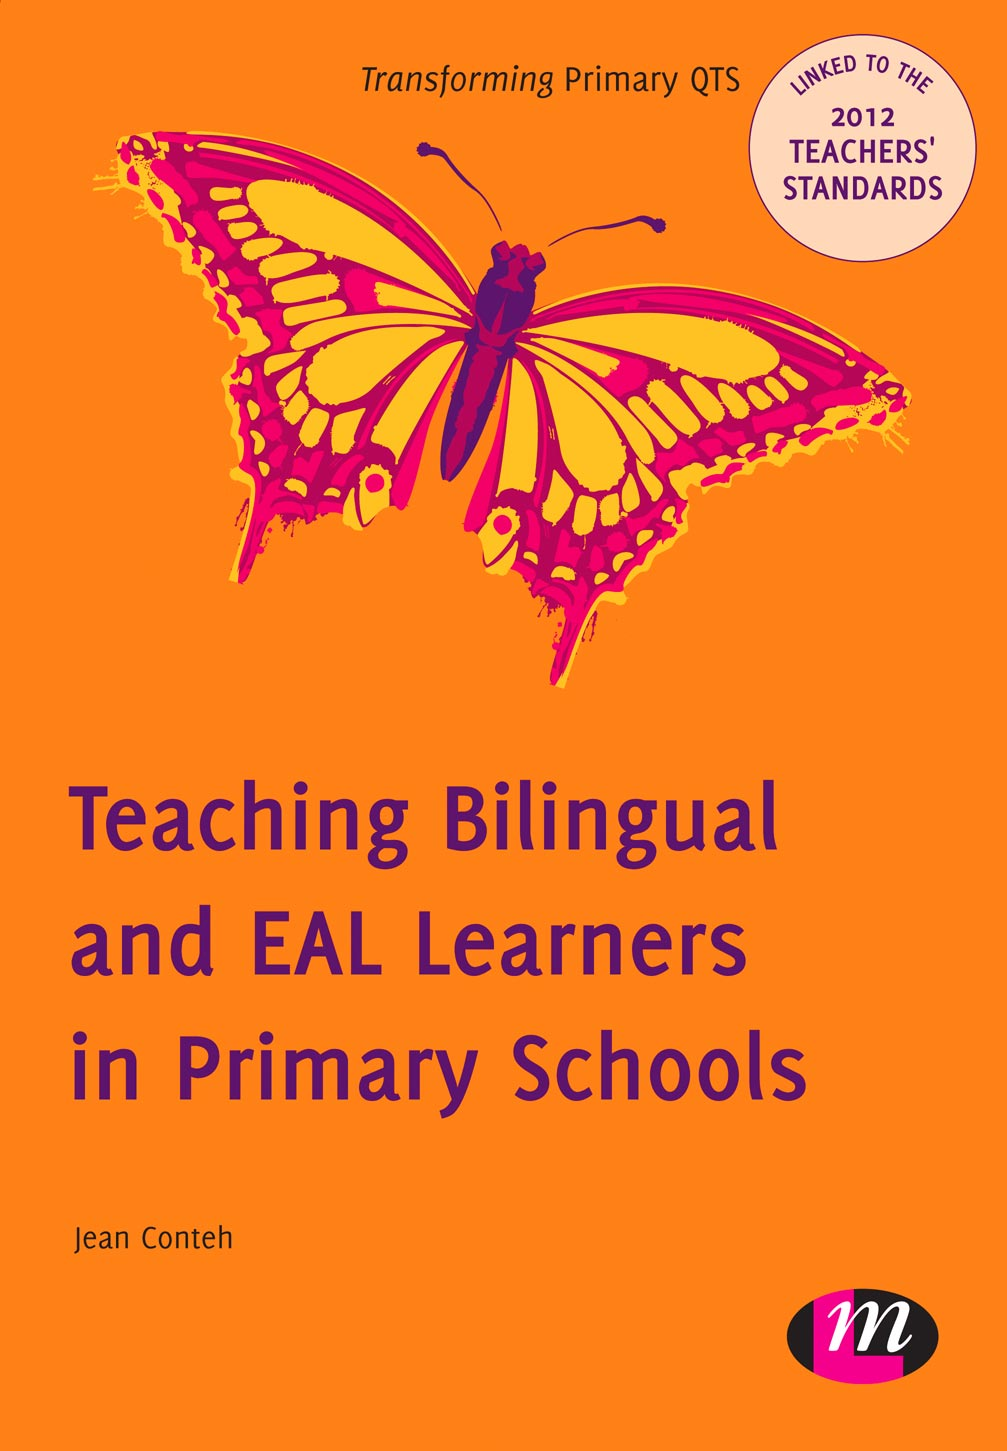 Teaching Bilingual and EAL Learners in Primary Schools 9780857257499